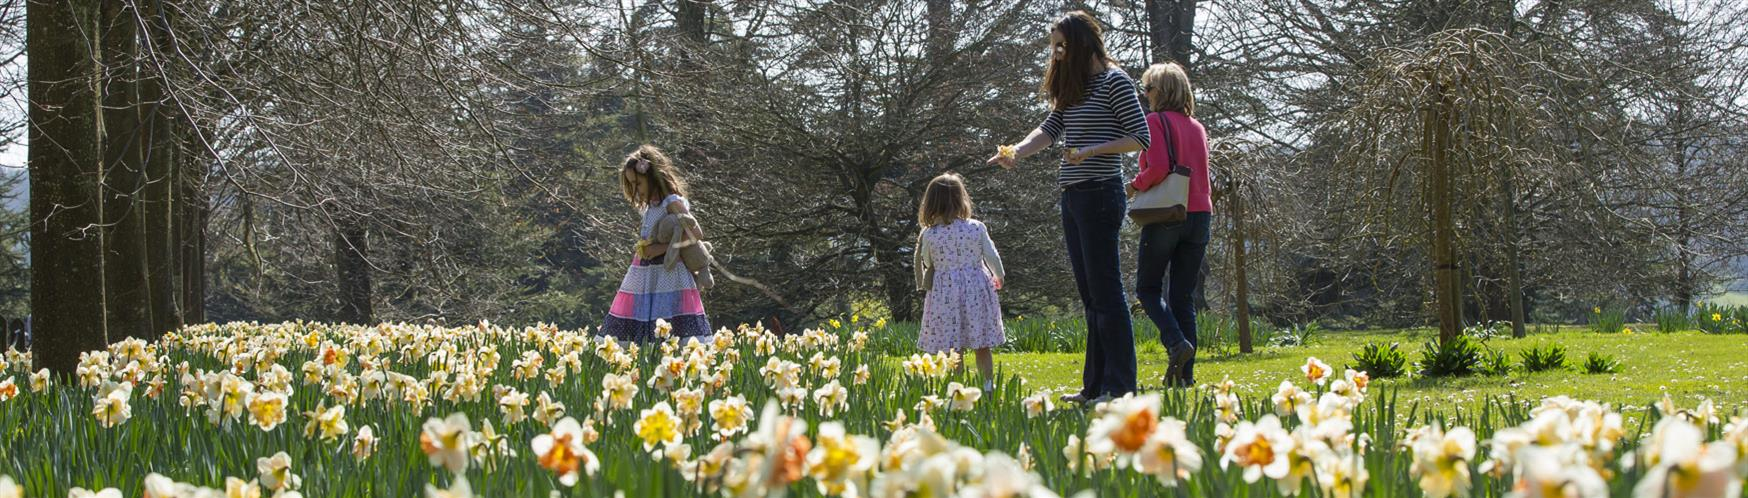 Enjoy a springtime stroll in a garden